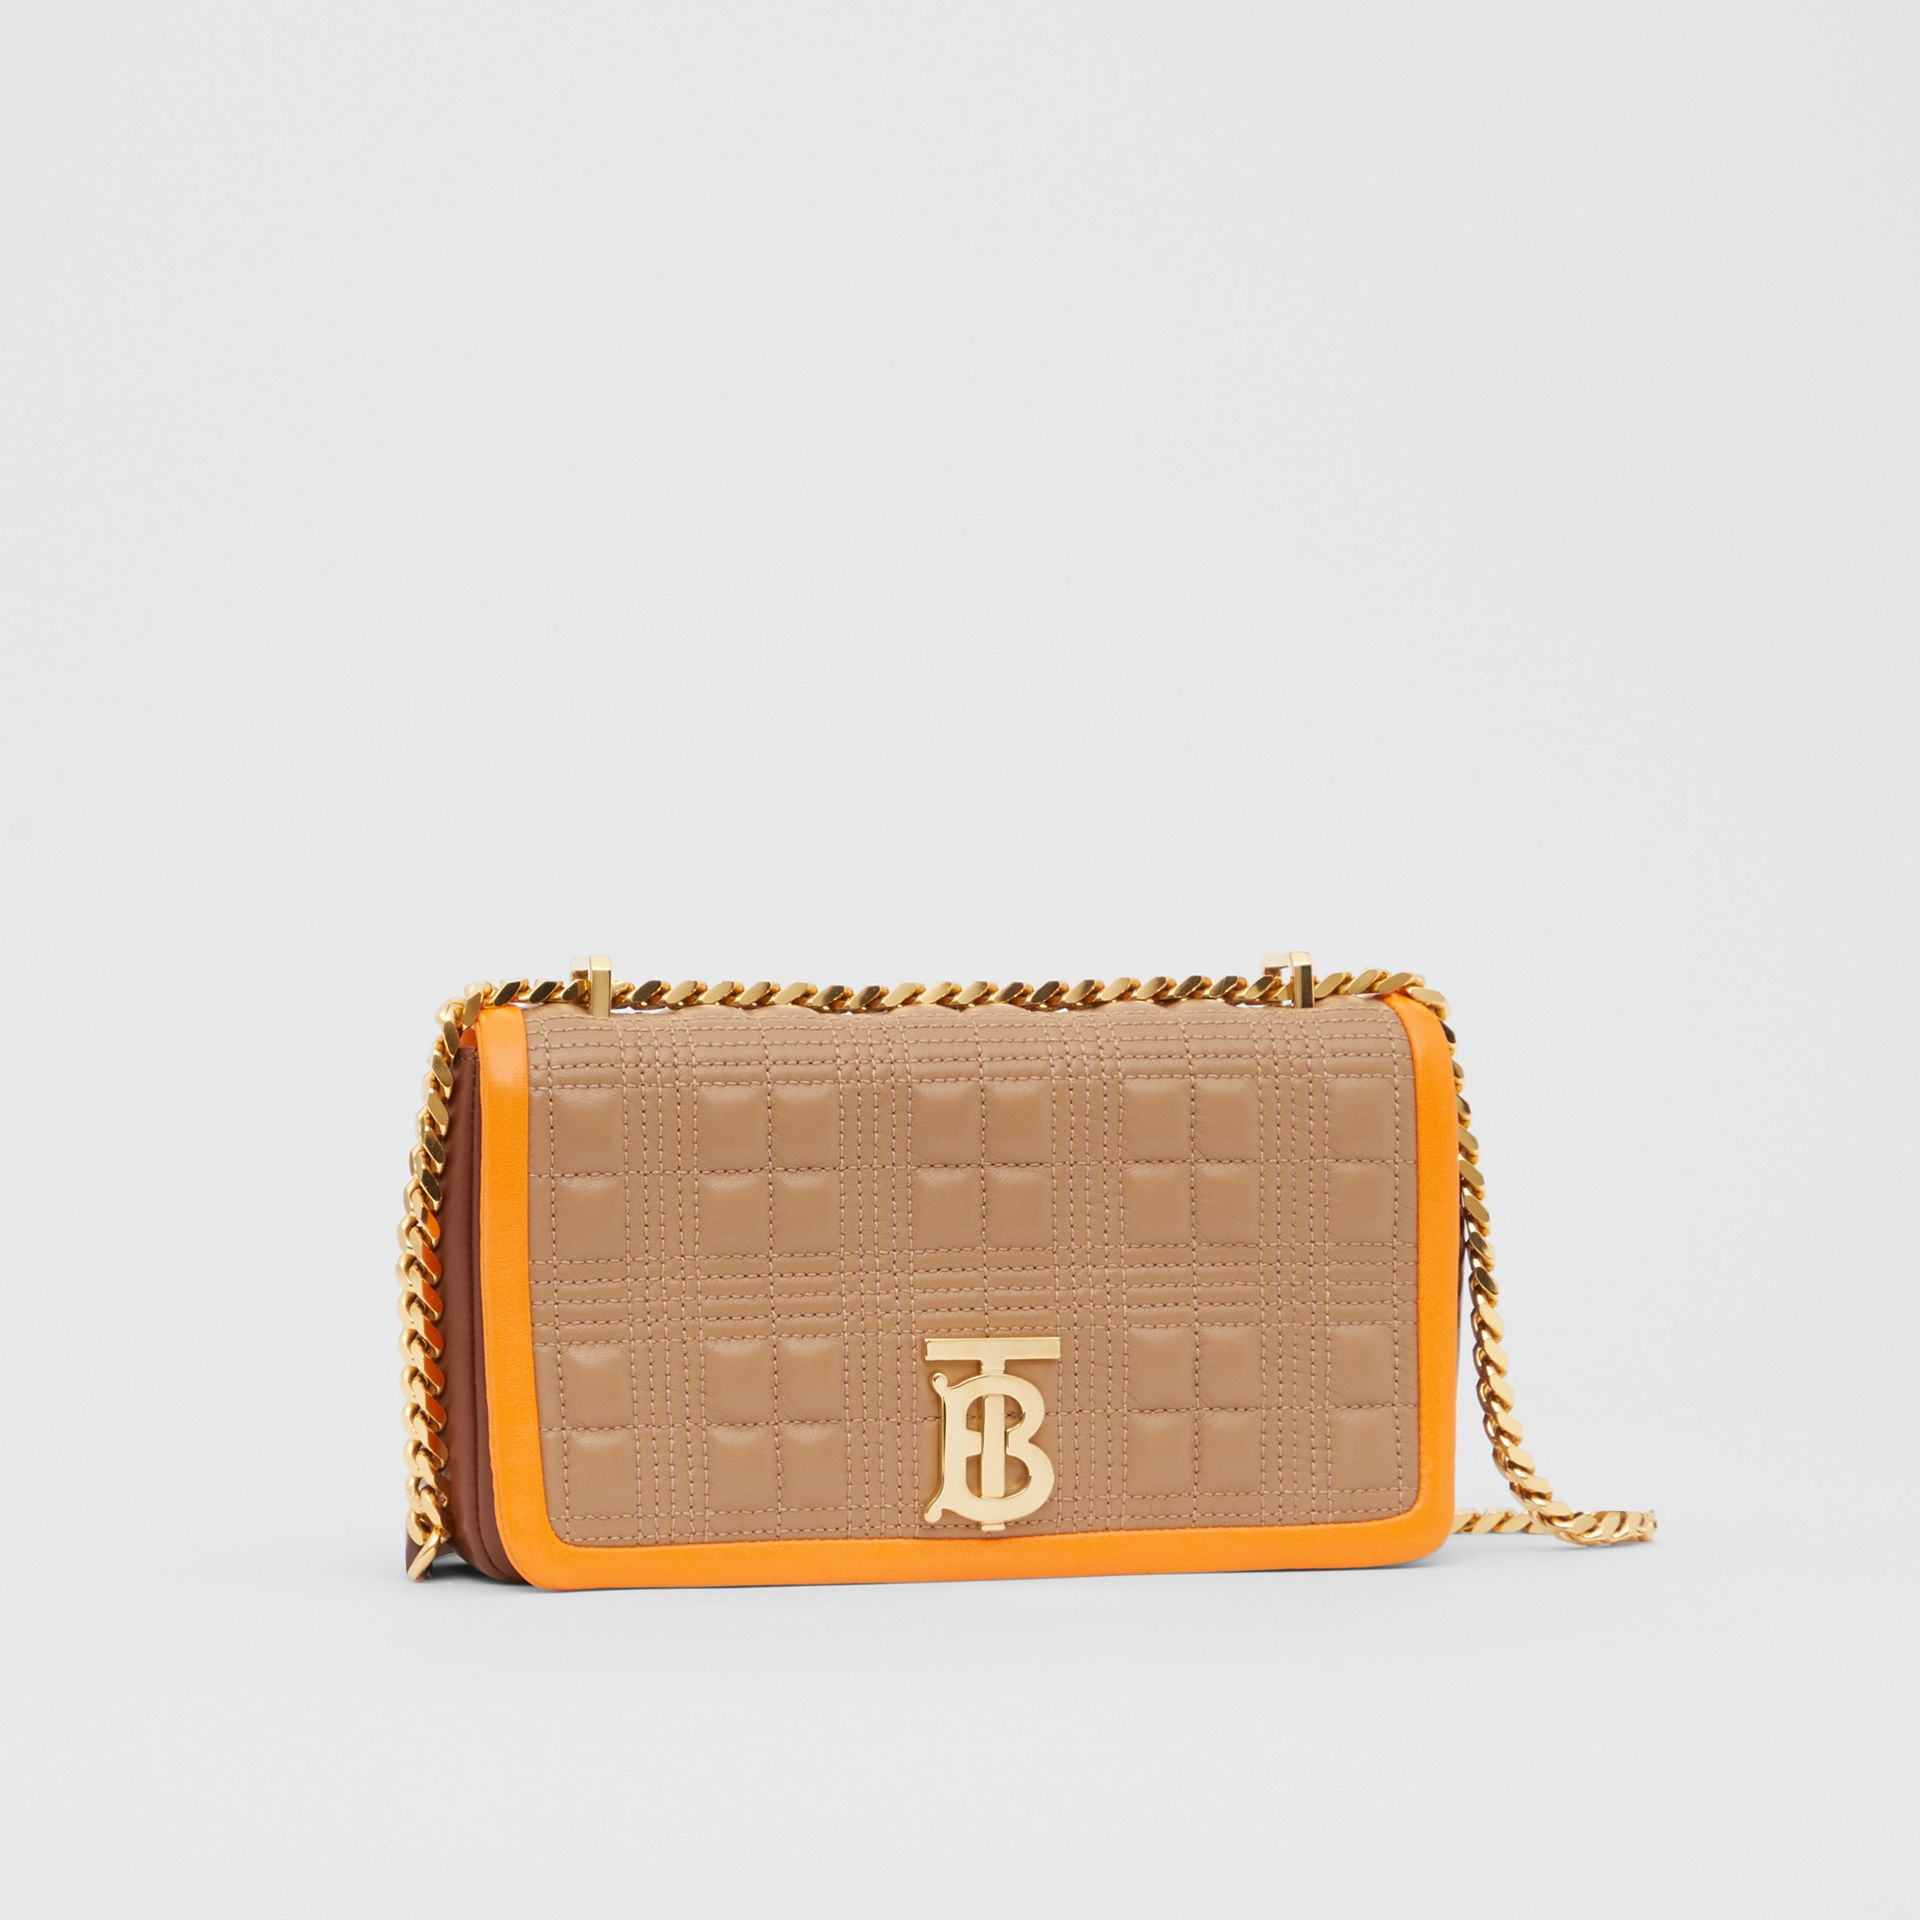 Small Quilted Tri-tone Lambskin Lola Bag in Camel/bright Orange - Women | Burberry - gallery image 6